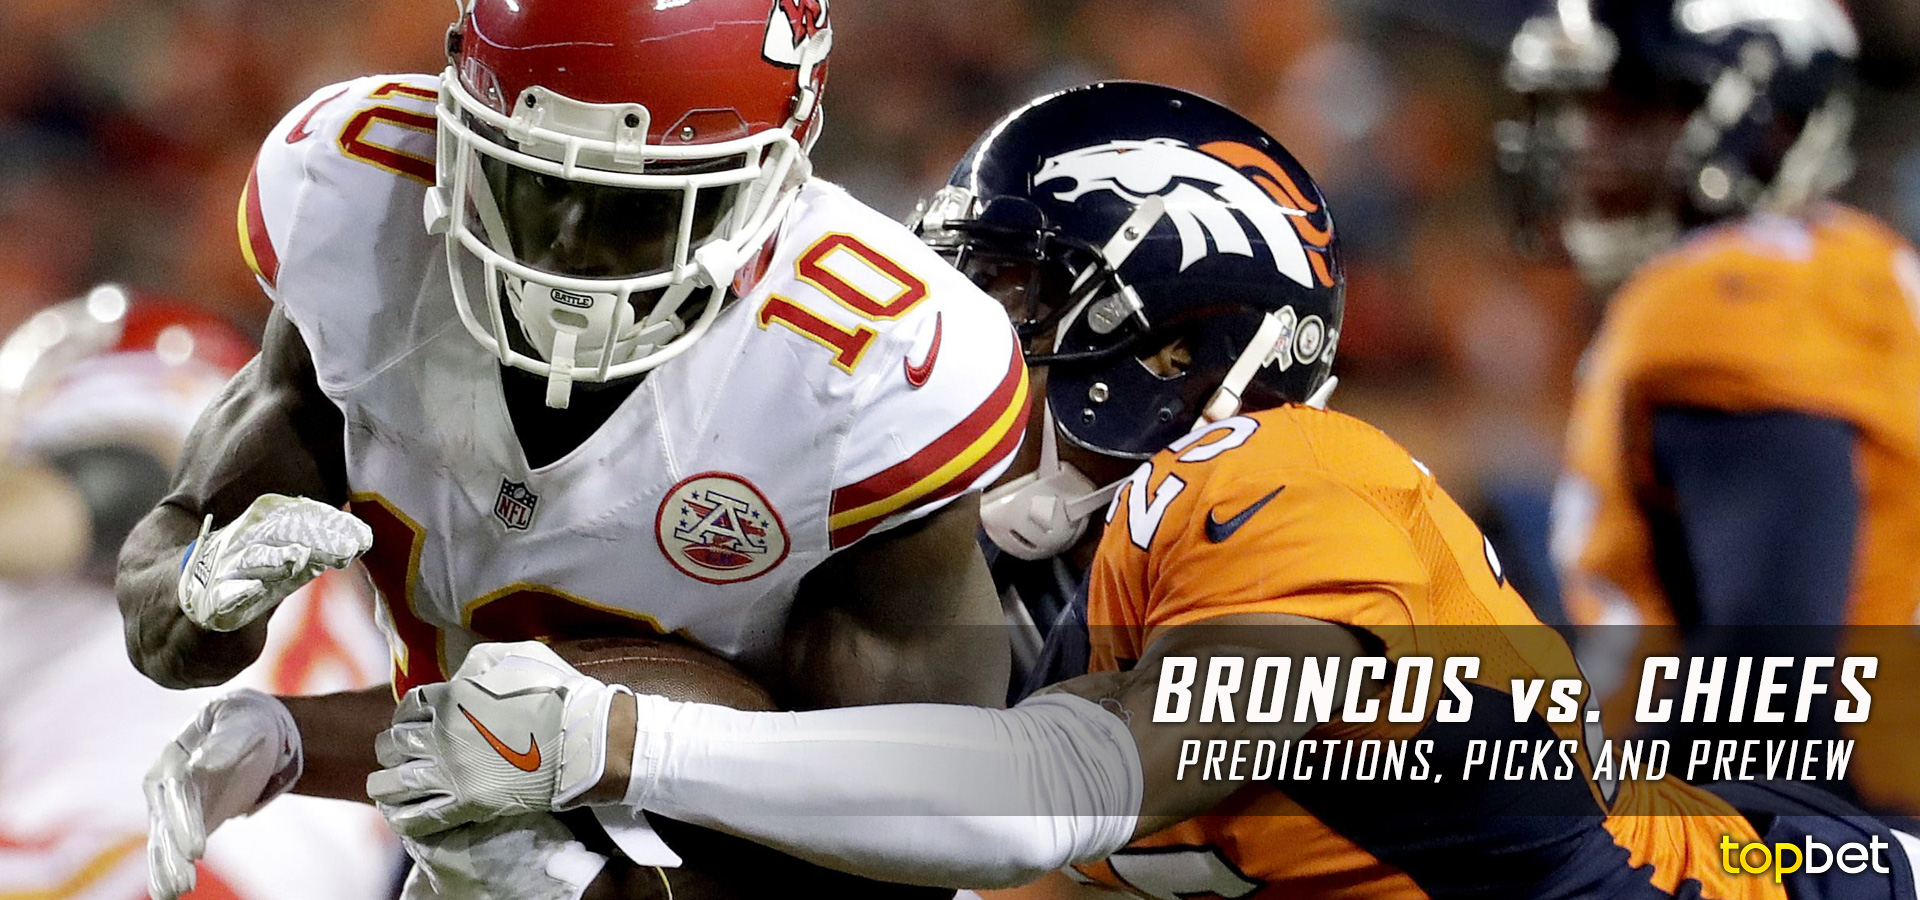 sportsline picks review point spread broncos vs patriots